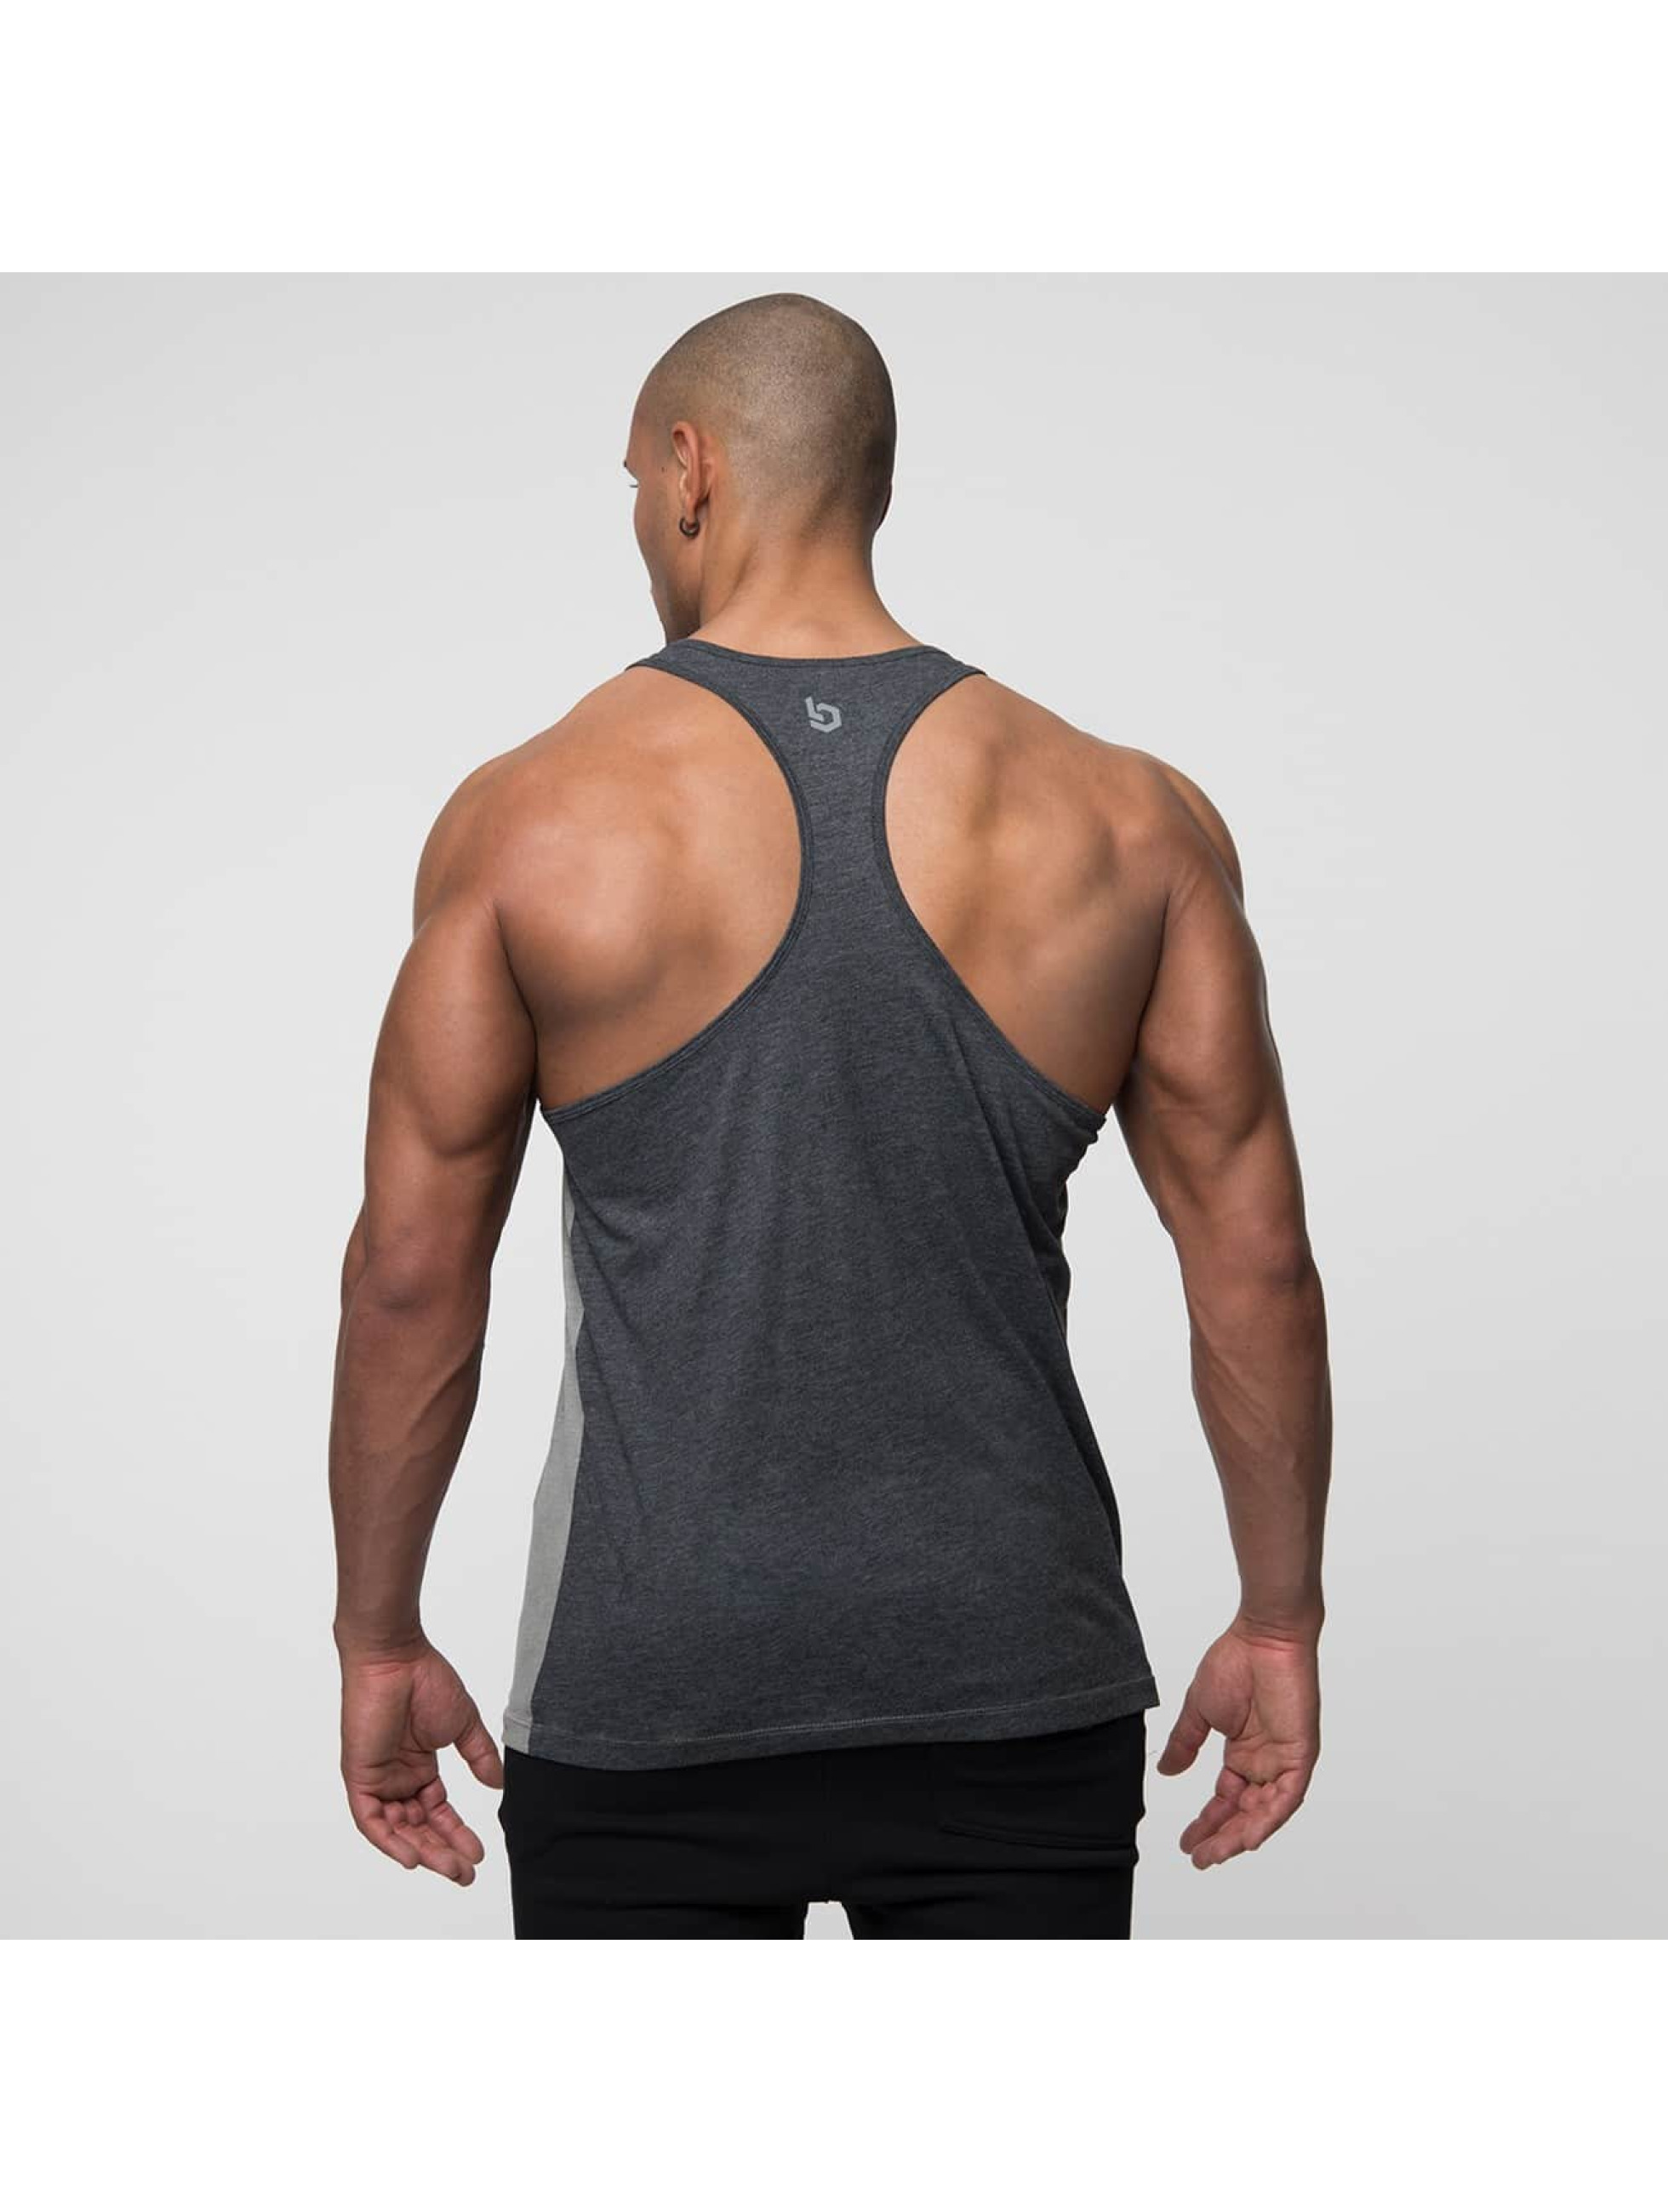 Beyond Limits Tank Tops Selected Stringer szary